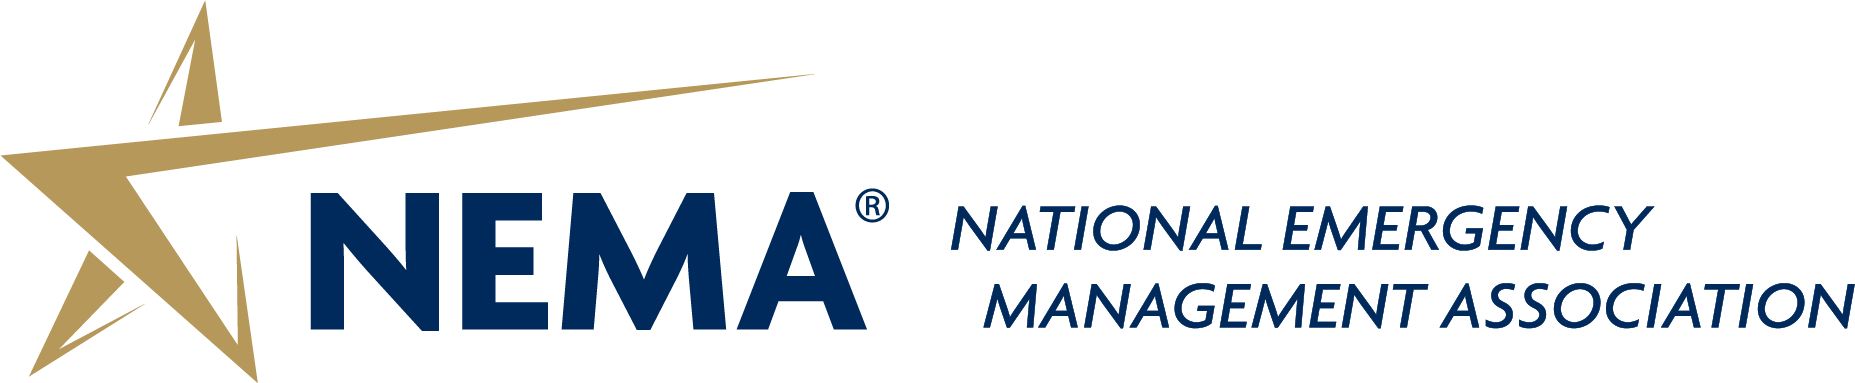 National Emergency Management Association